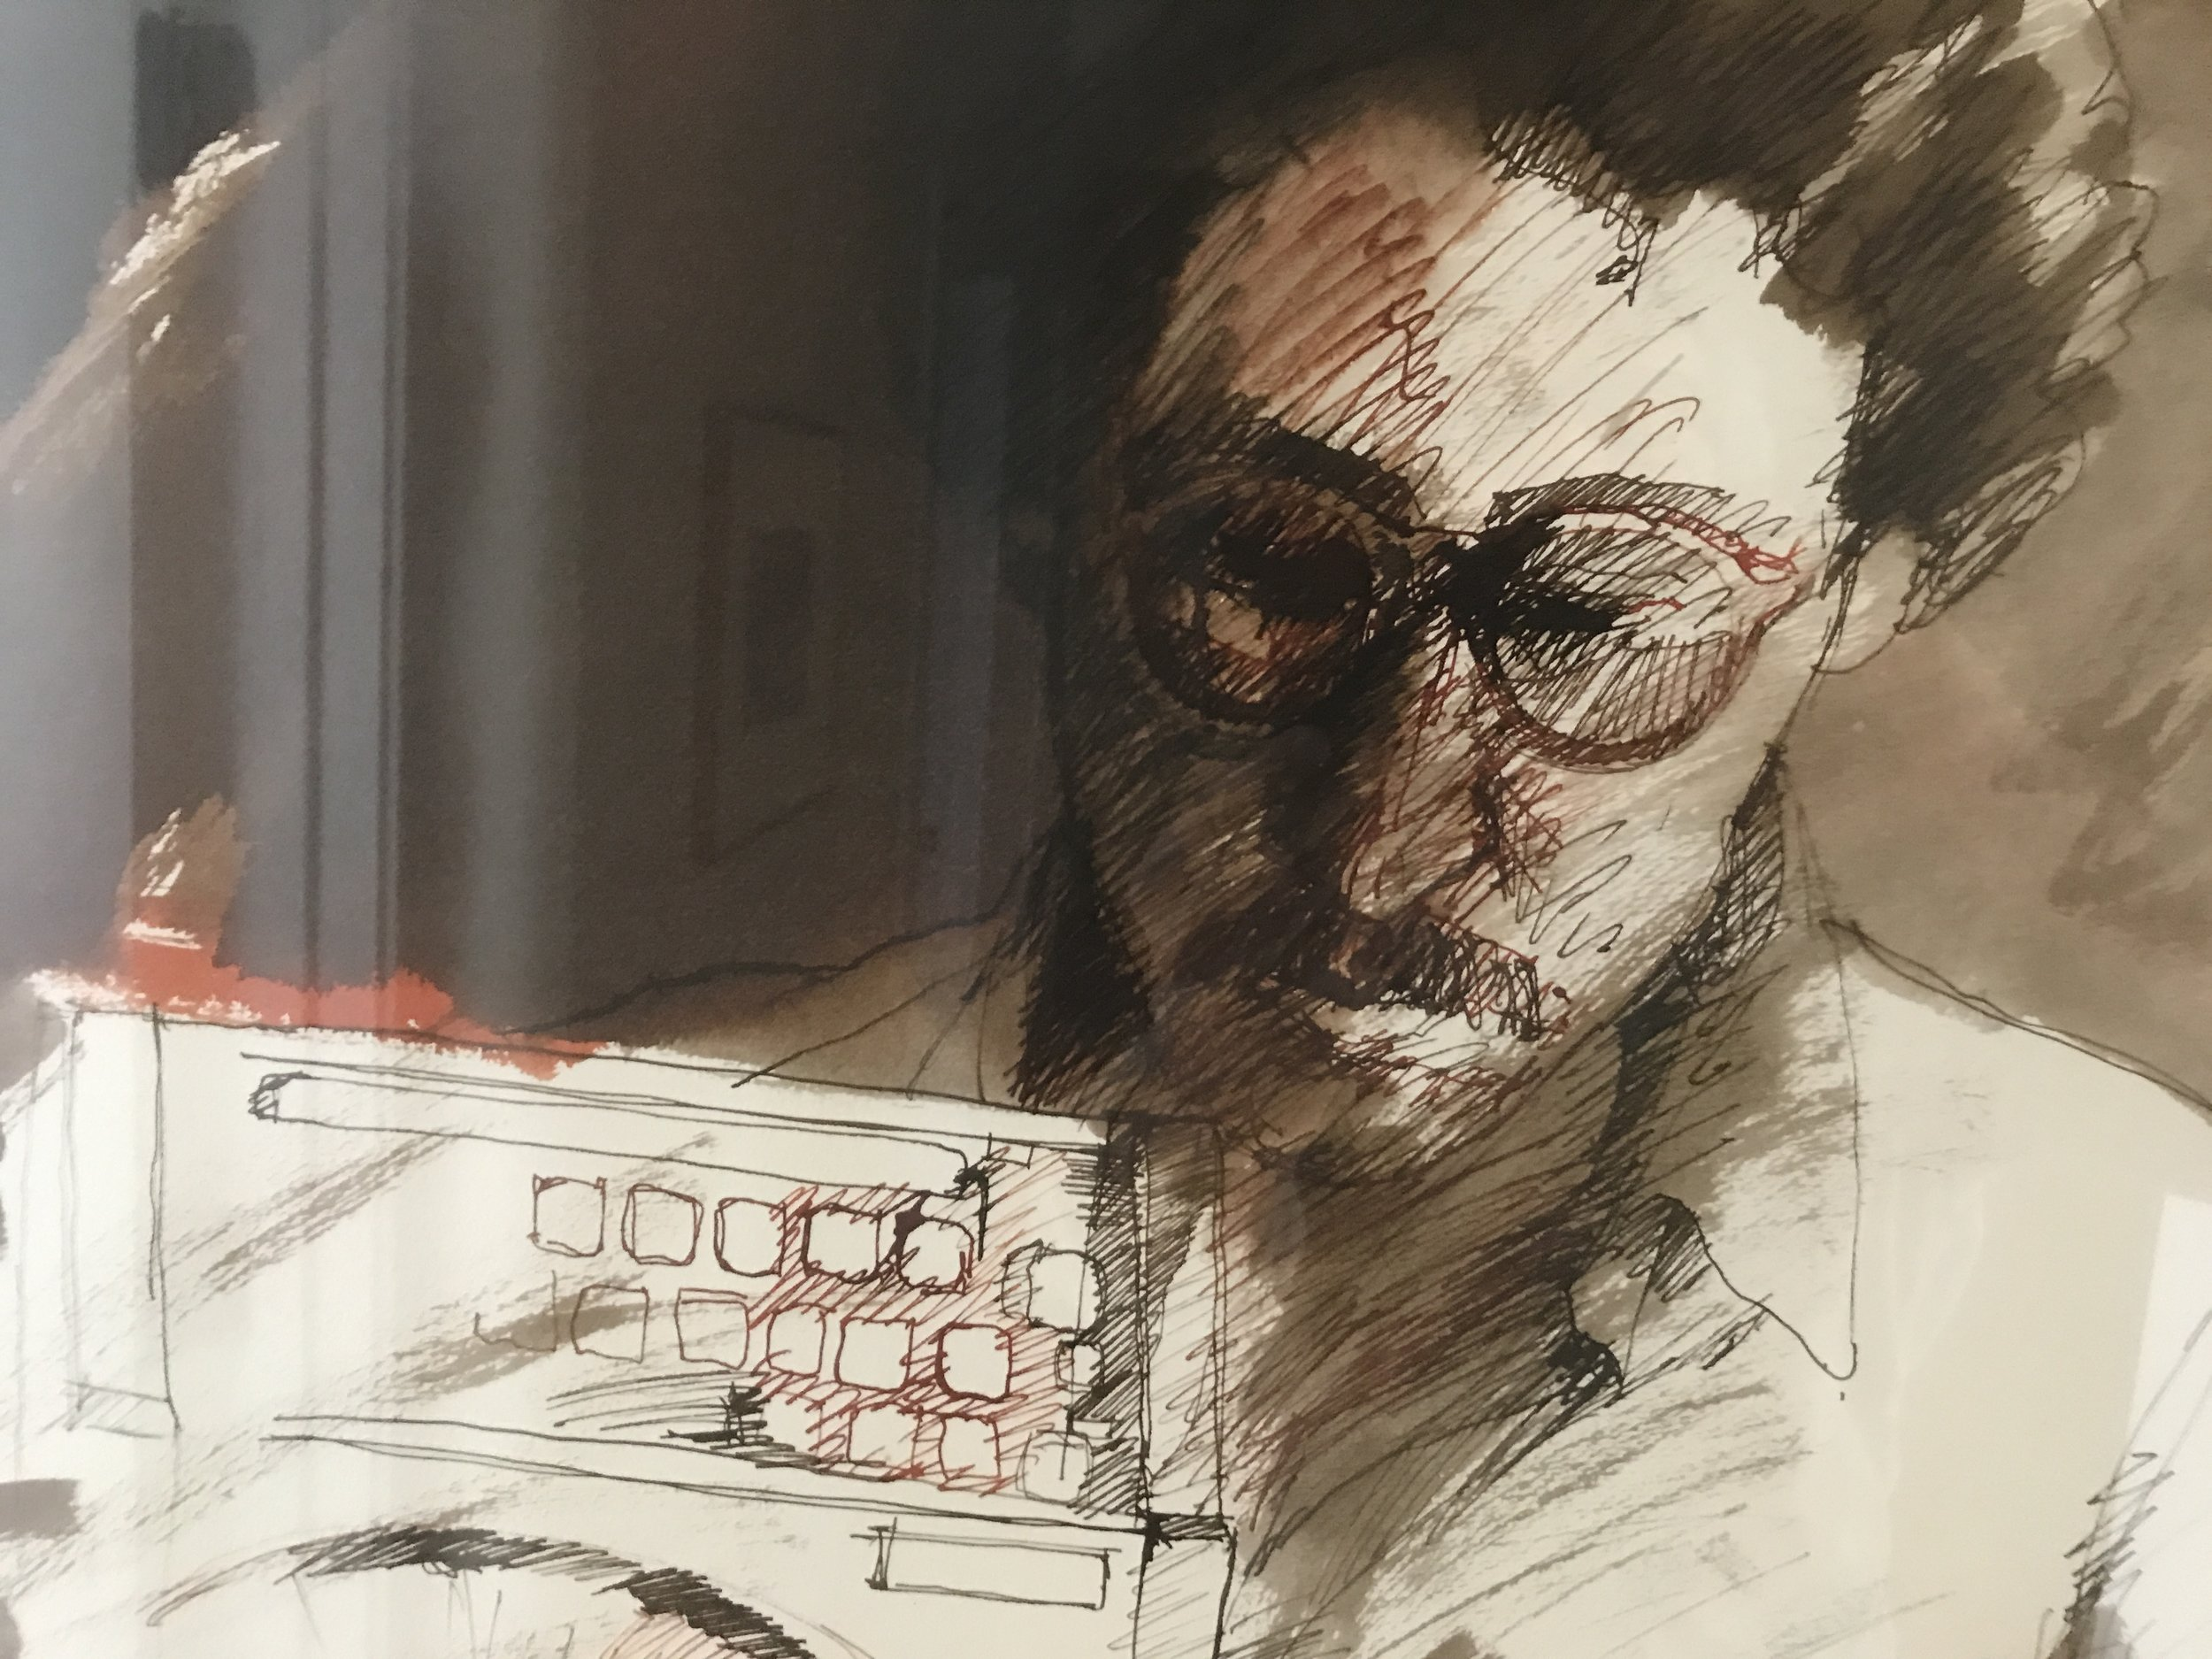 Laurence's portrait with Olivetti Lettera 22 typewriter, by Ricardo Van Steen